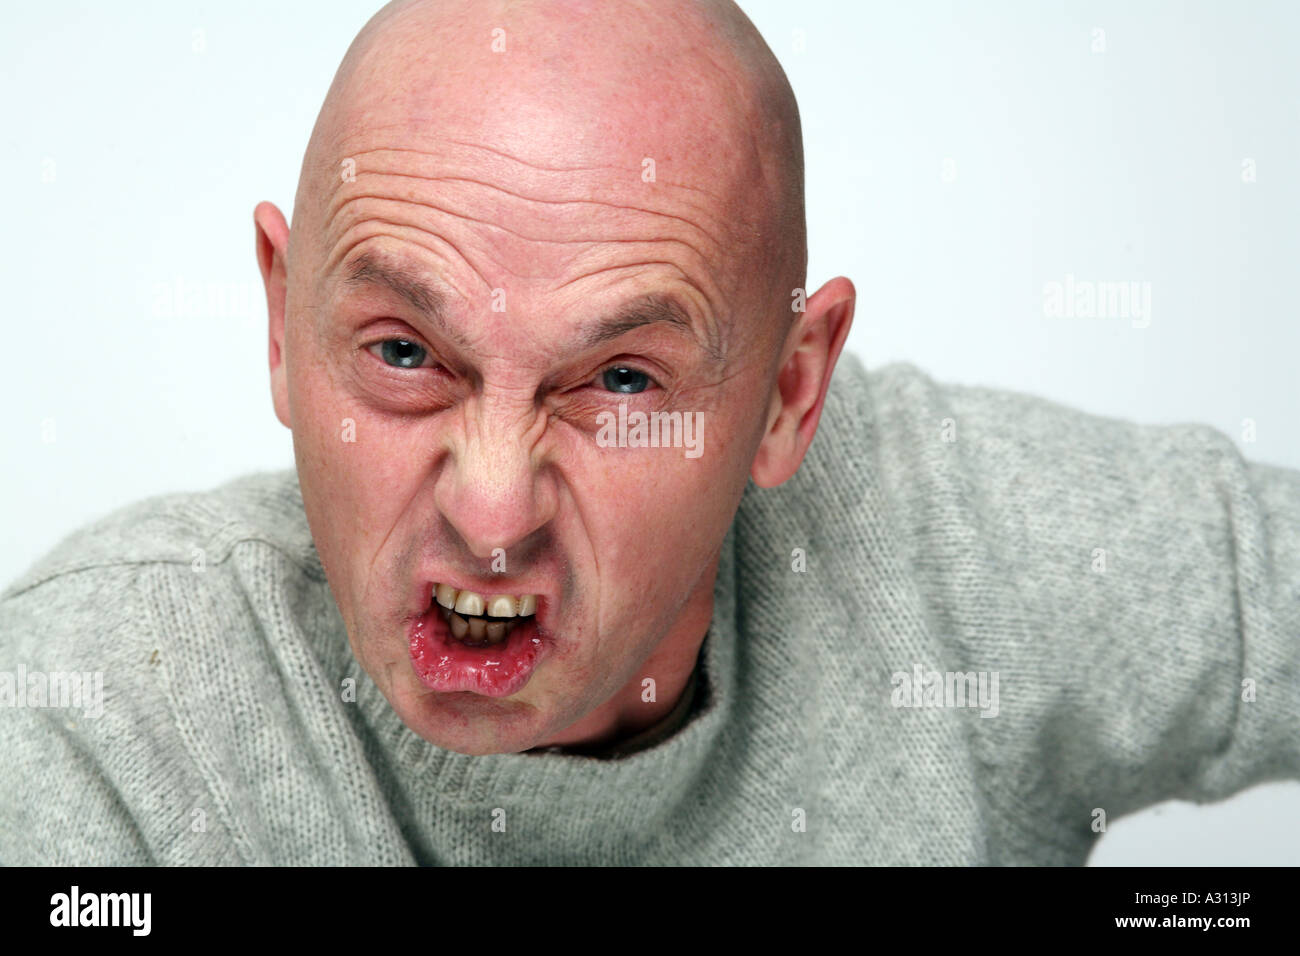 Bald man in a rage at camera - Stock Image